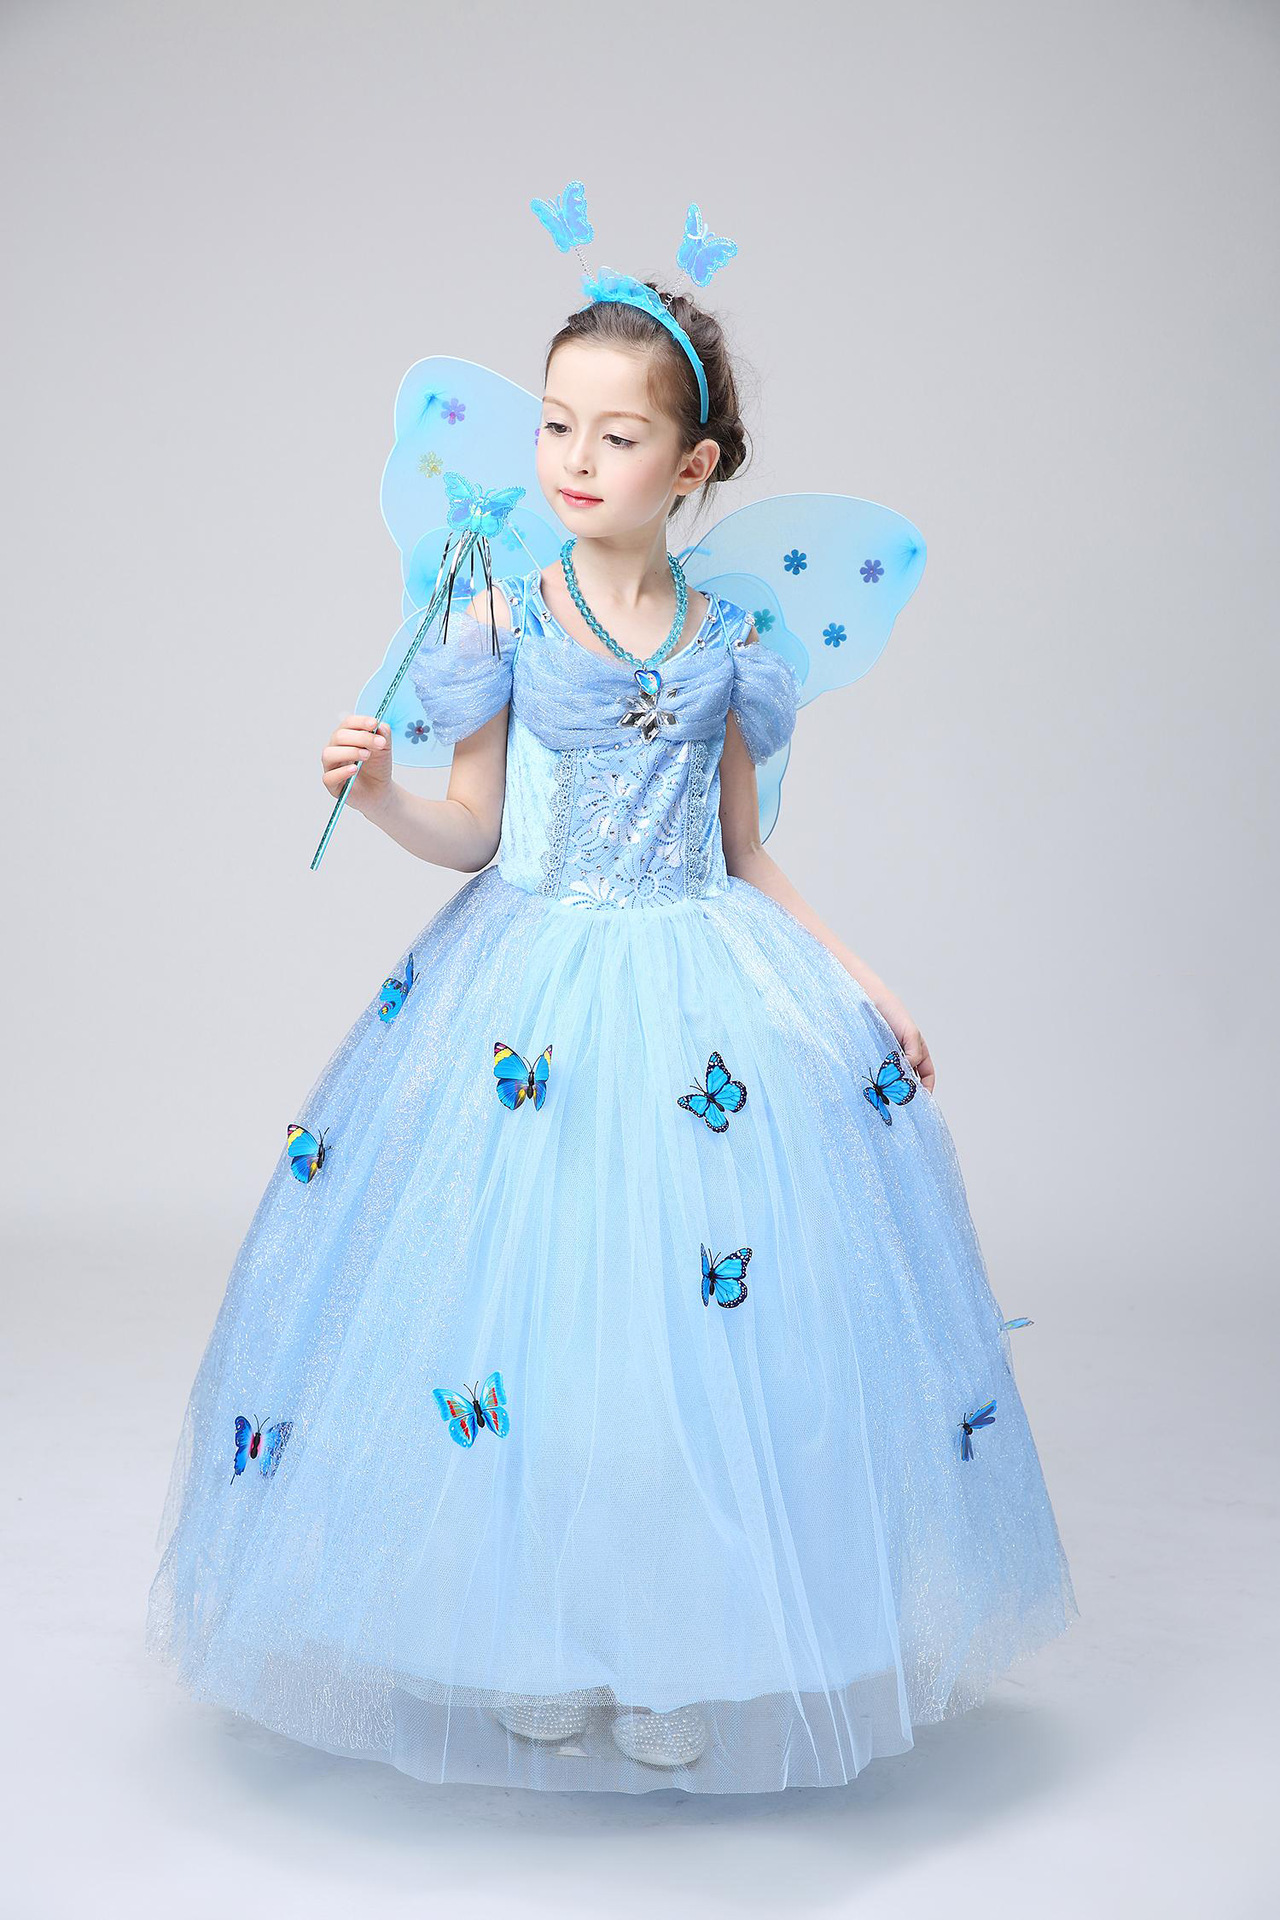 Disney girls frozen princess anna elsa queen cosplay costume party formal dress ebay - Princesse anna et elsa ...